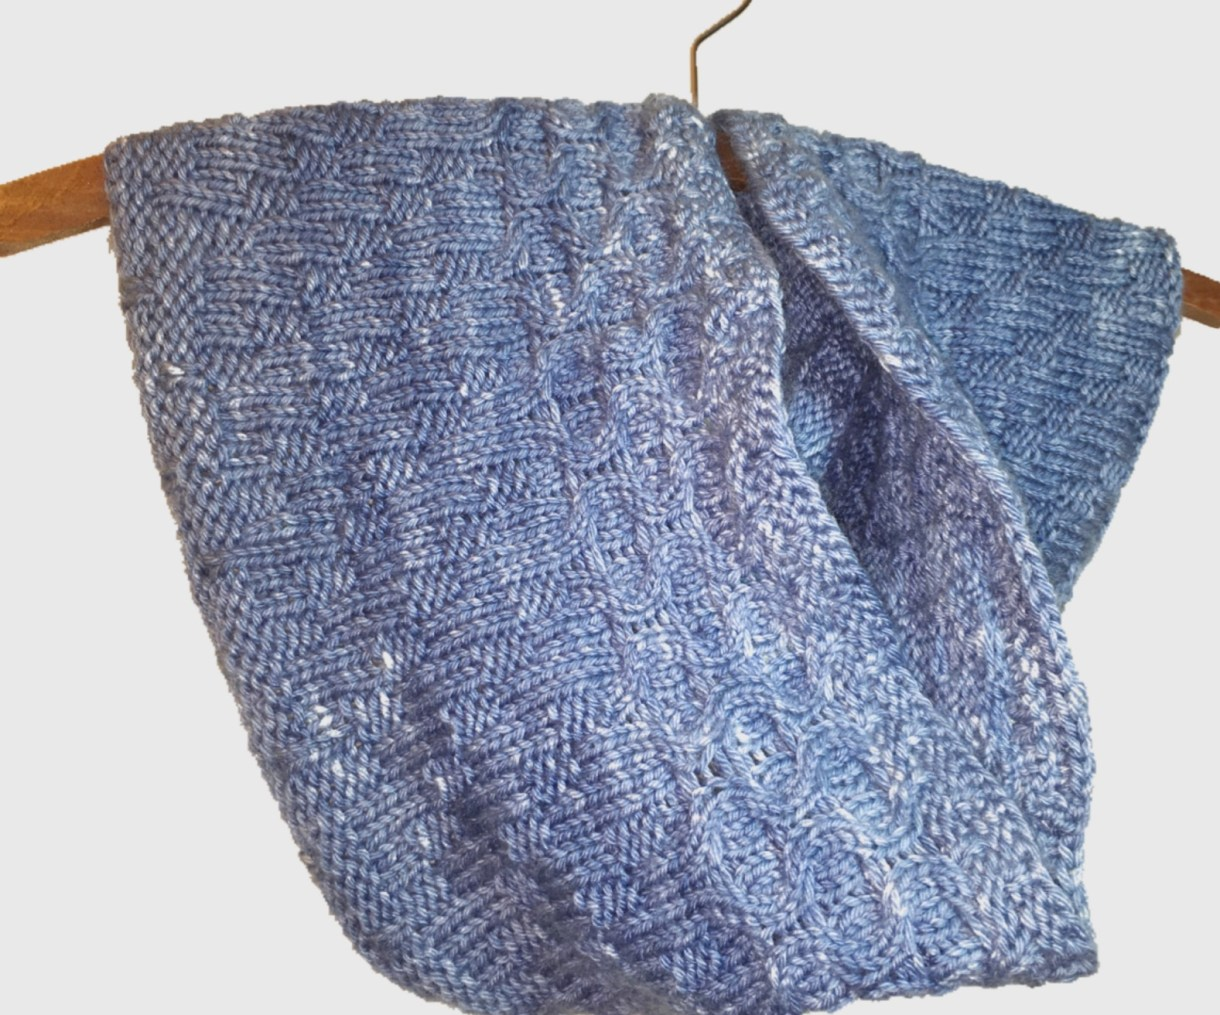 A knitted cowl. Simple and beautiful.